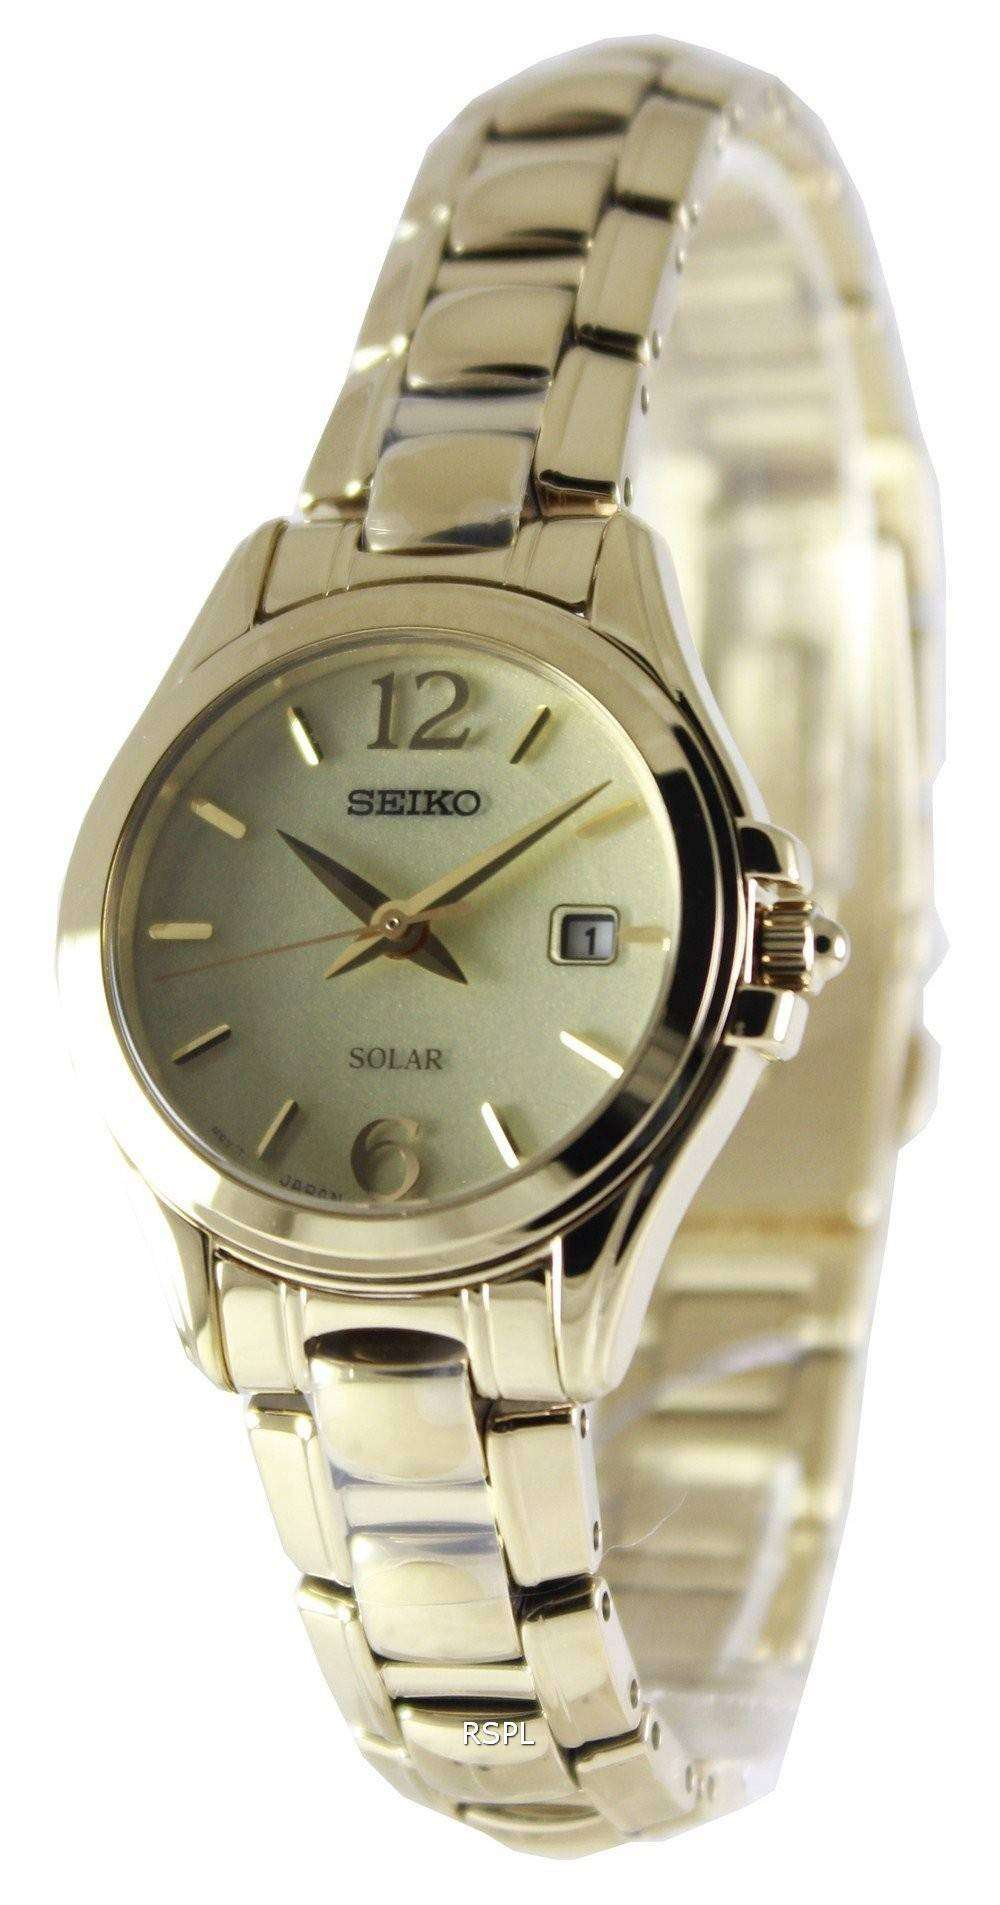 Seiko solar power reserve sut236p1 sut236p women 39 s watch downunderwatches for Solar power watches